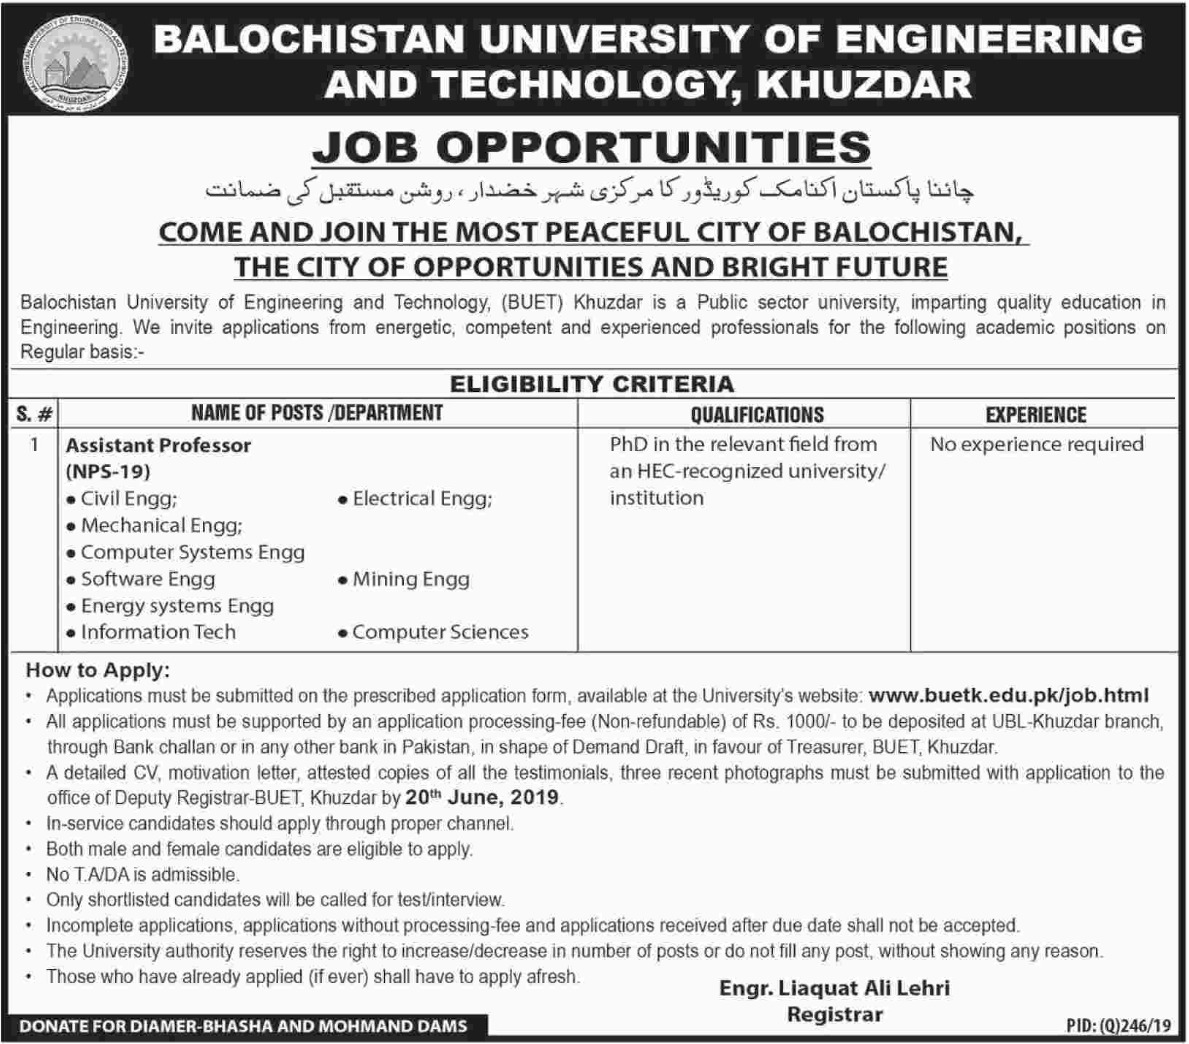 Balochistan University of Engineering and Technology BUET Khuzdar Jobs 2019 Balochistan